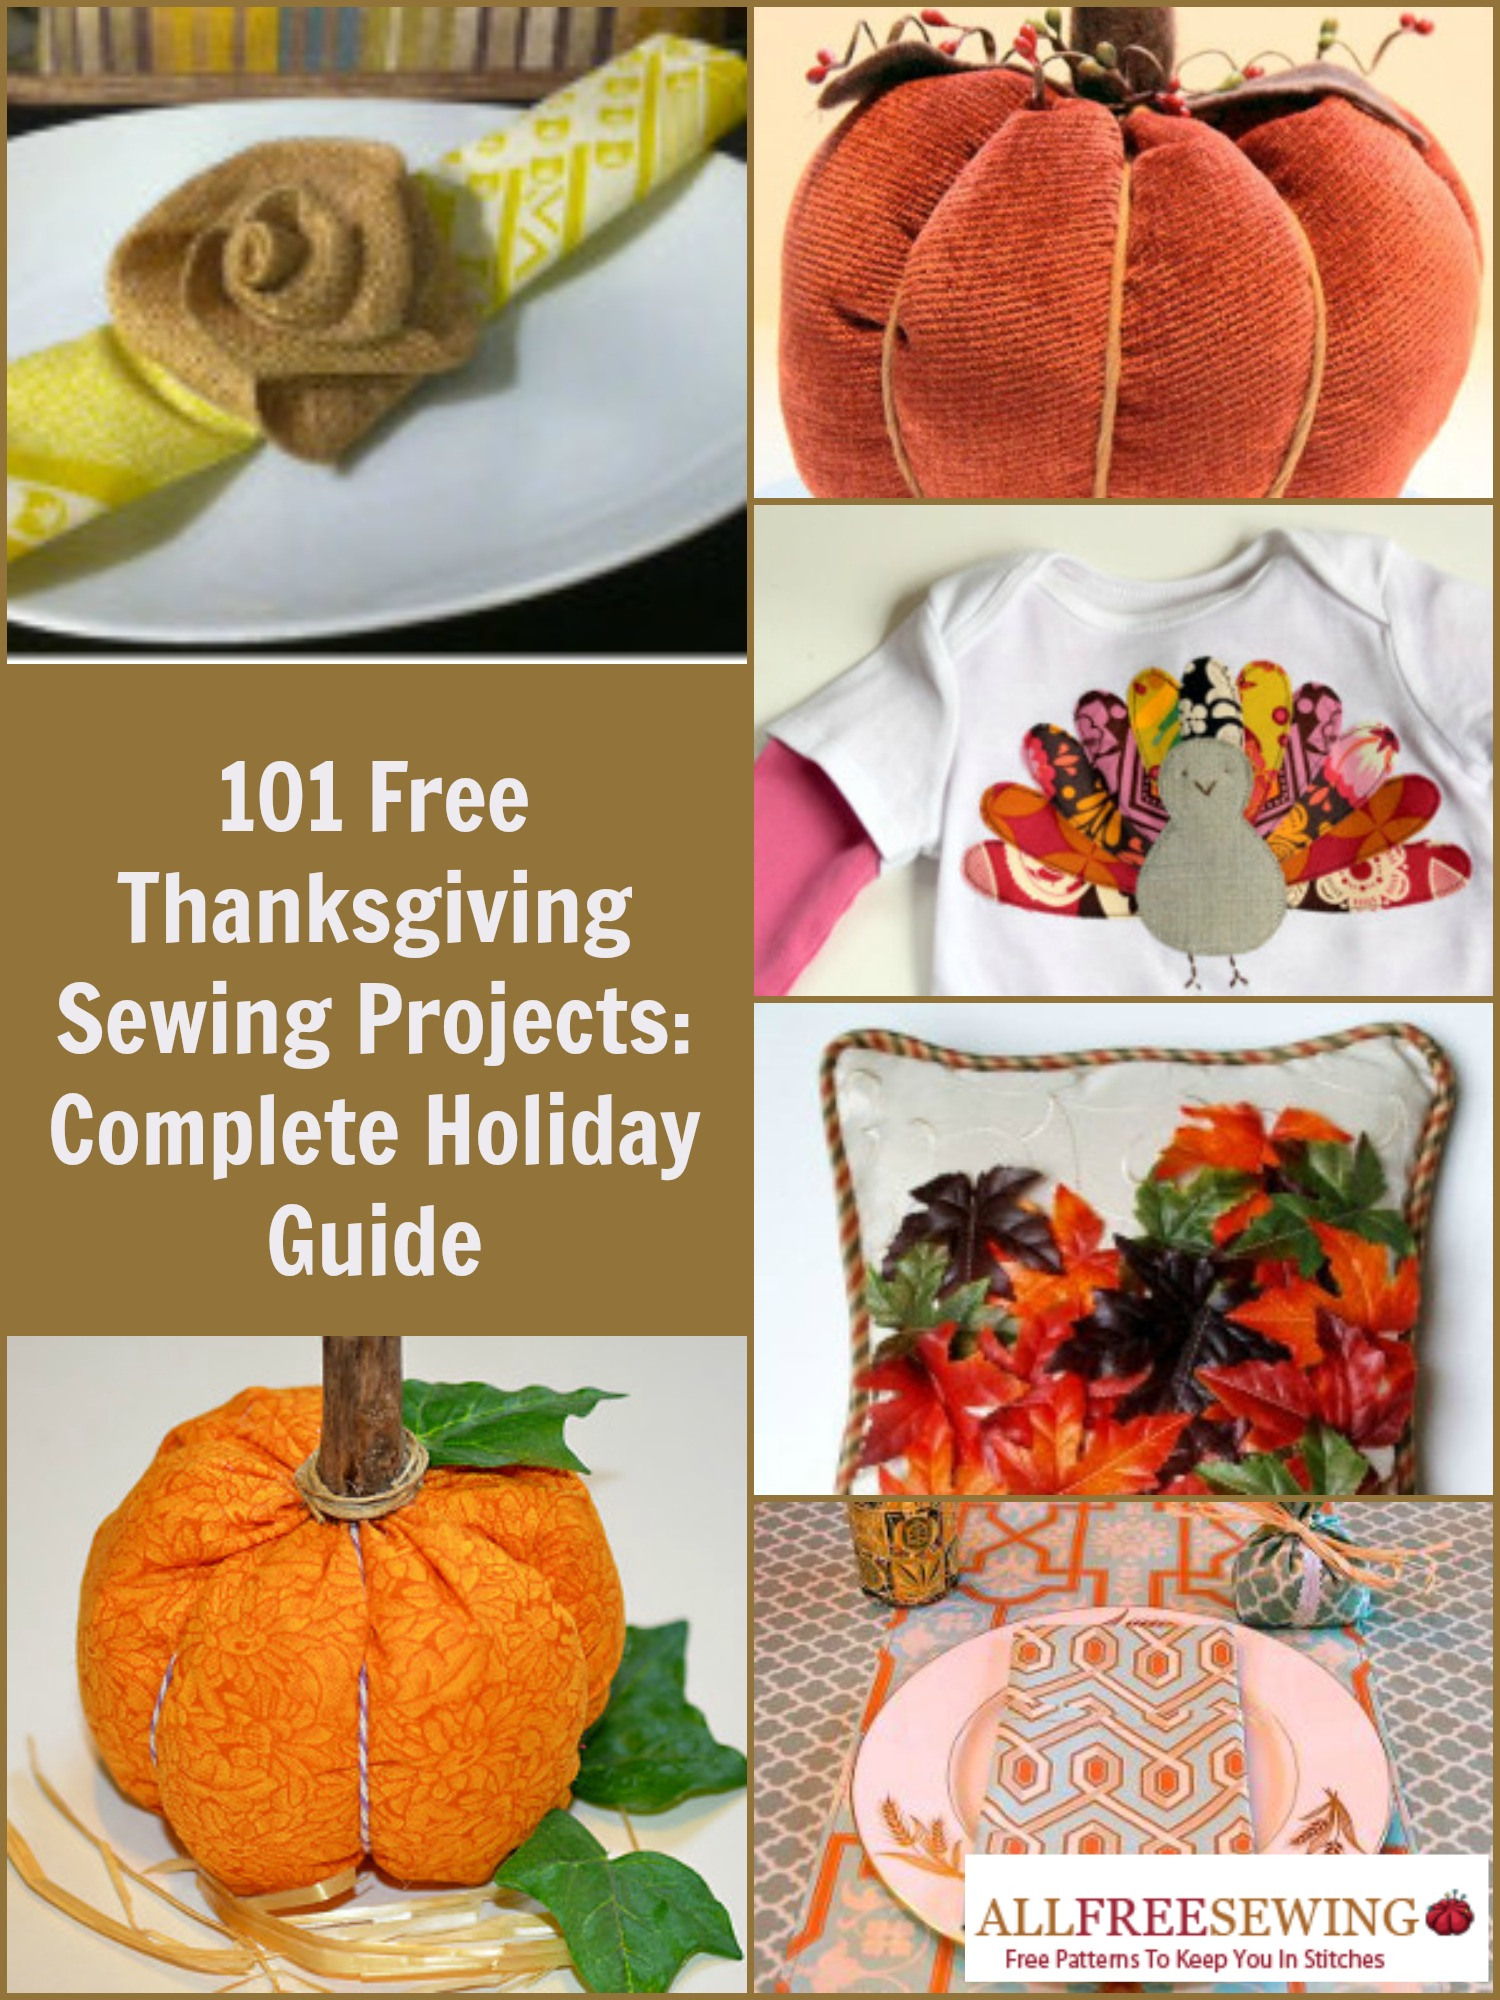 101 Free Thanksgiving Sewing Projects: Complete Holiday Guide